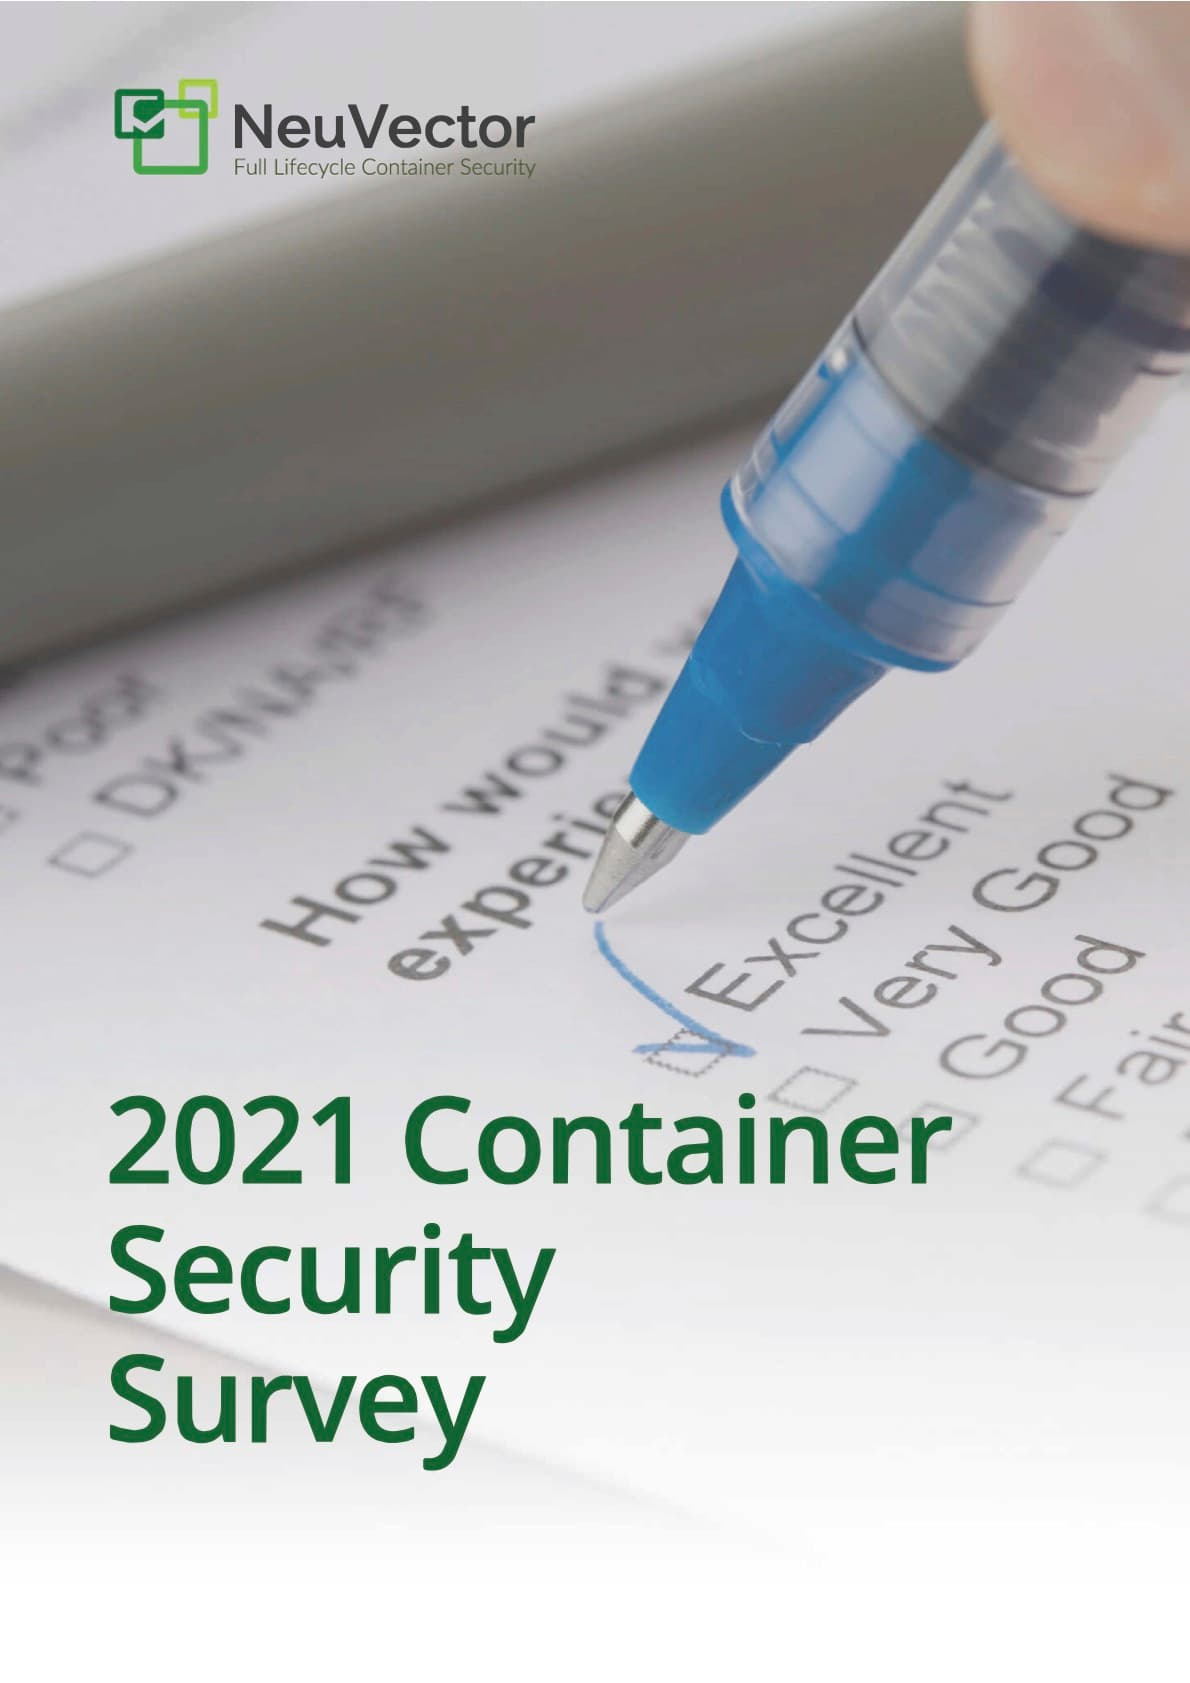 NeuVector Releases Results of 2021 Container Security Survey